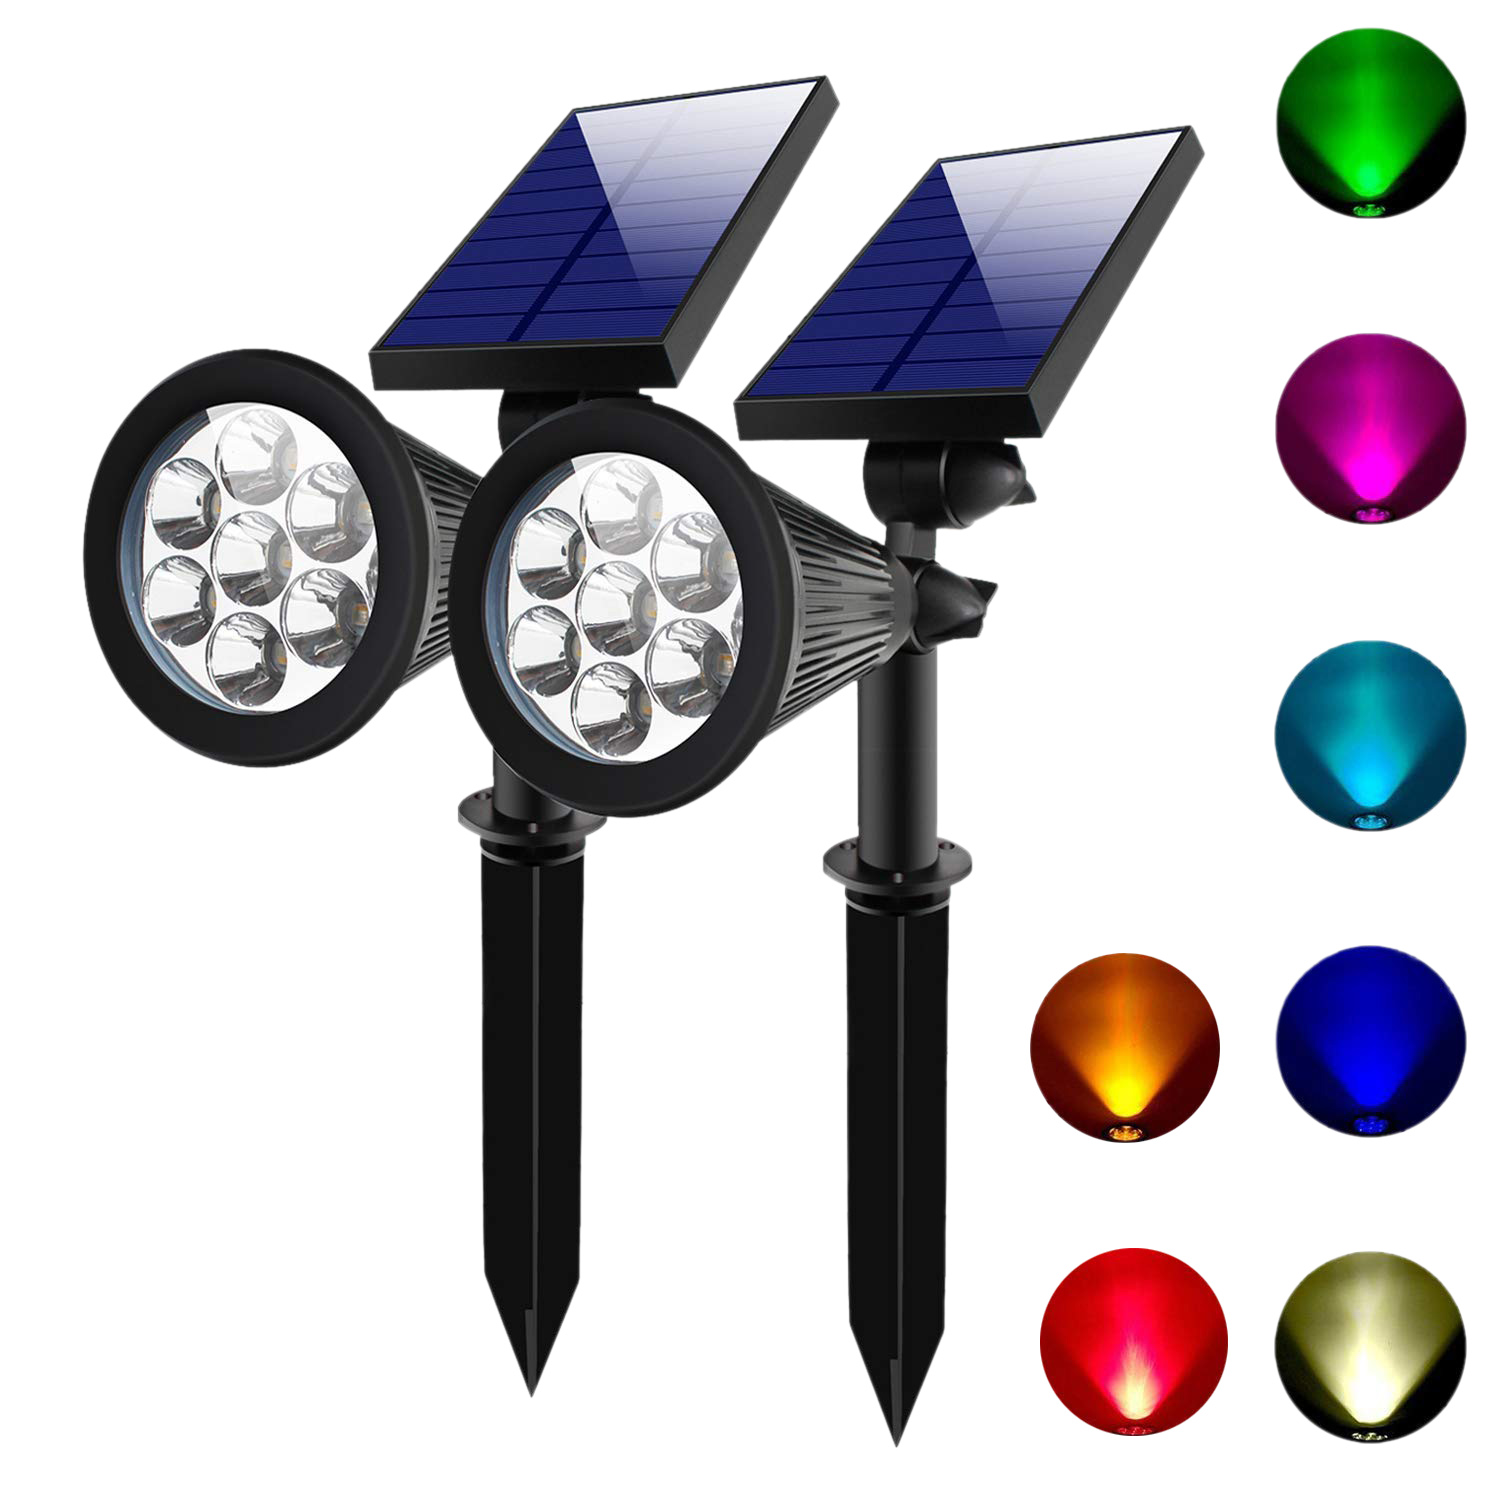 2 SETS 7 LED Solar Spotlights Outdoor Solar Lights Waterproof Color Spot Lights for Garden